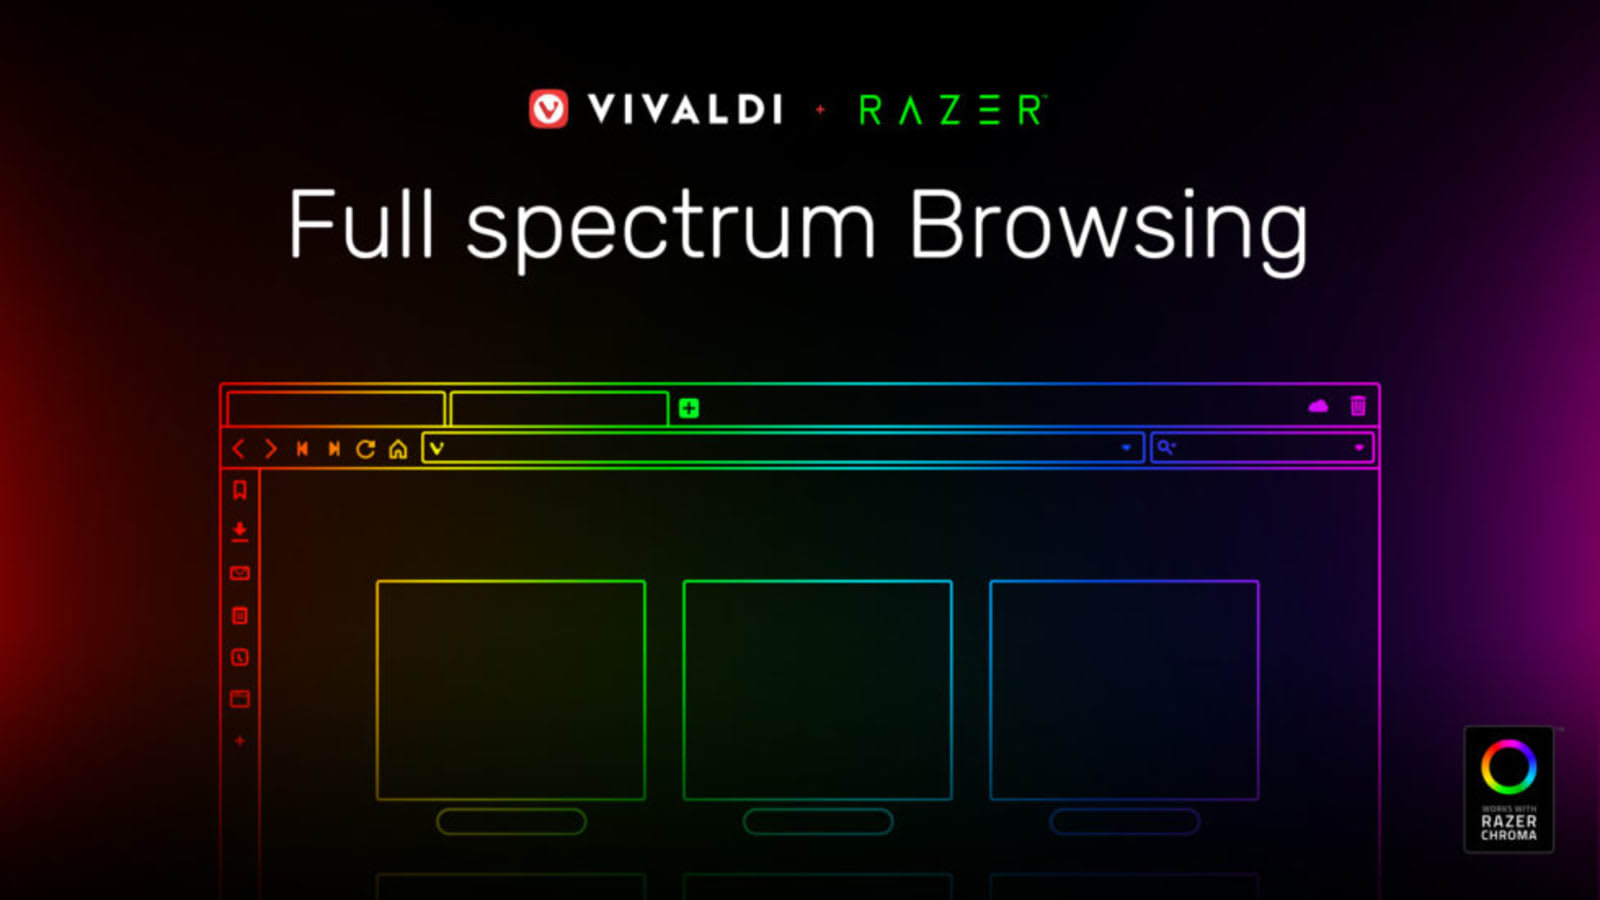 Vivaldi browser syncs Razer Chroma lights with website colors